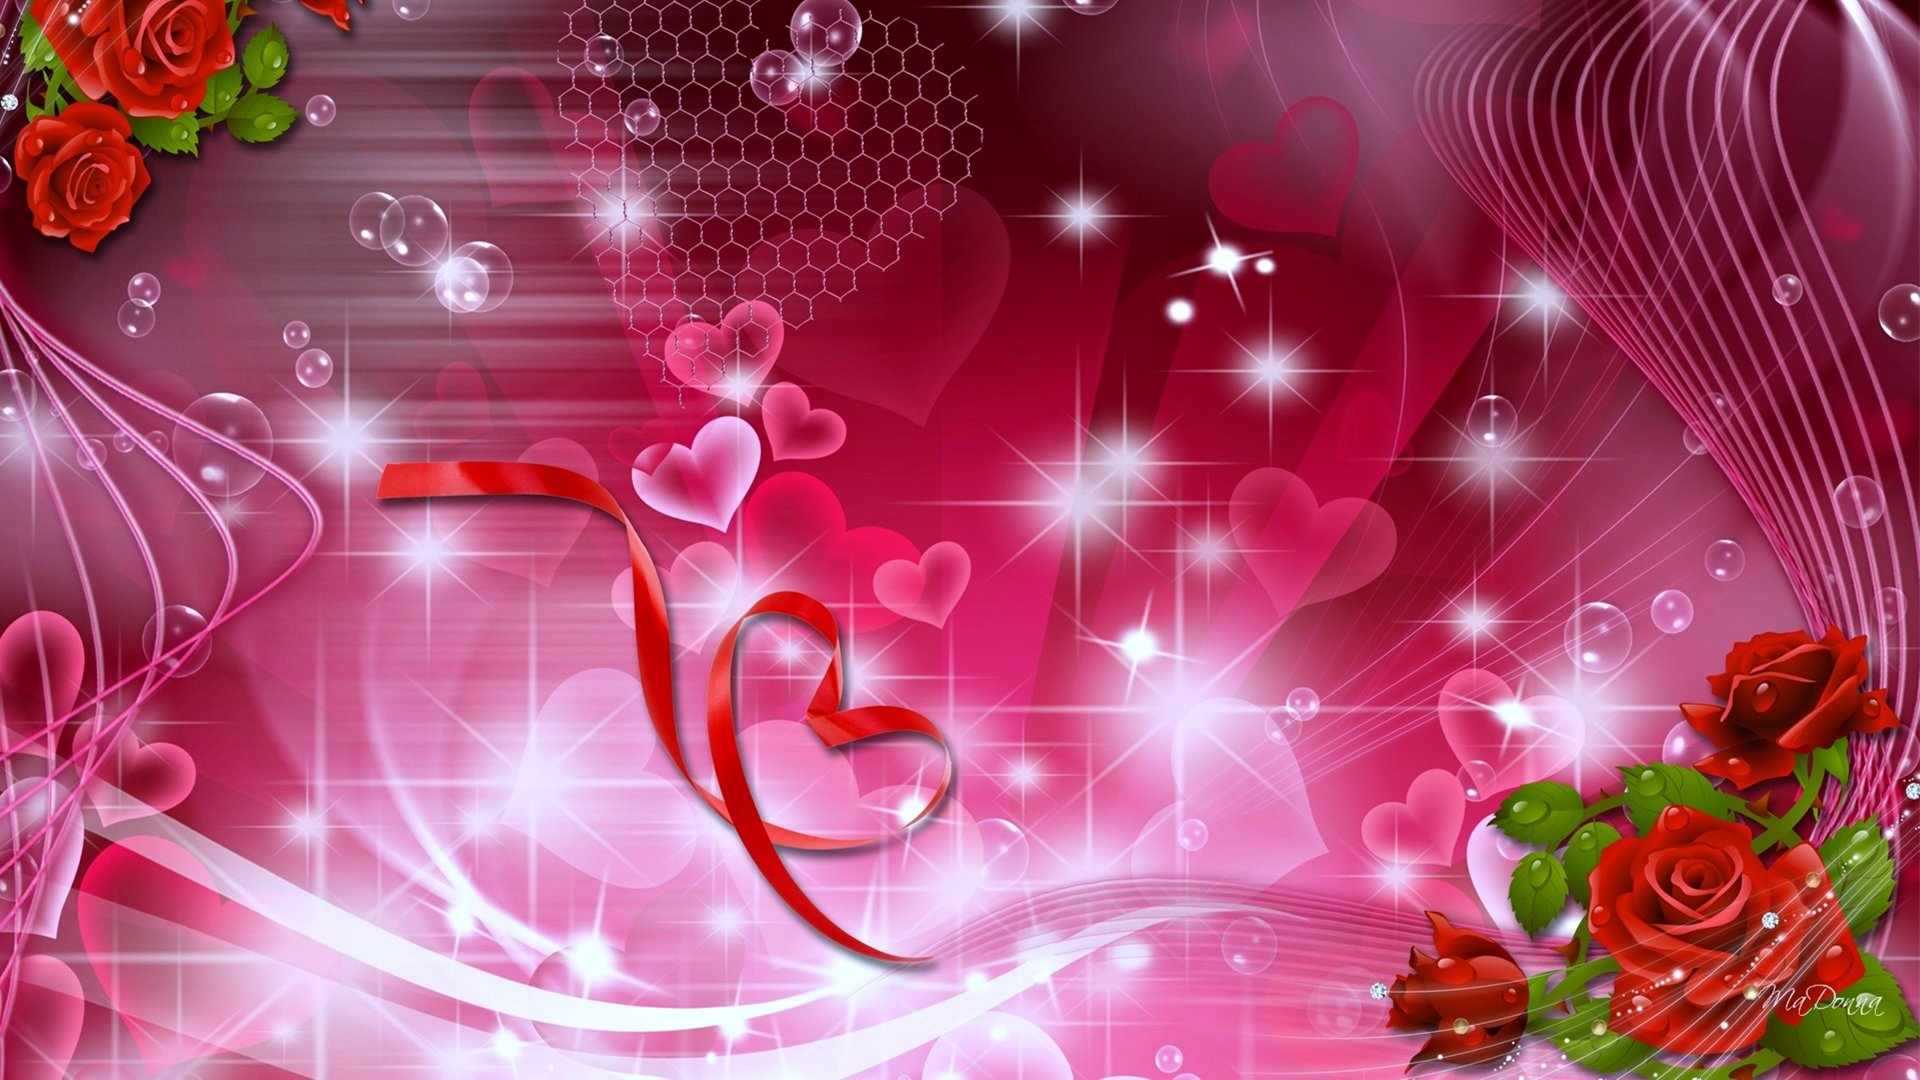 Artistic - Love Romantic Heart Rose Artistic Wallpaper